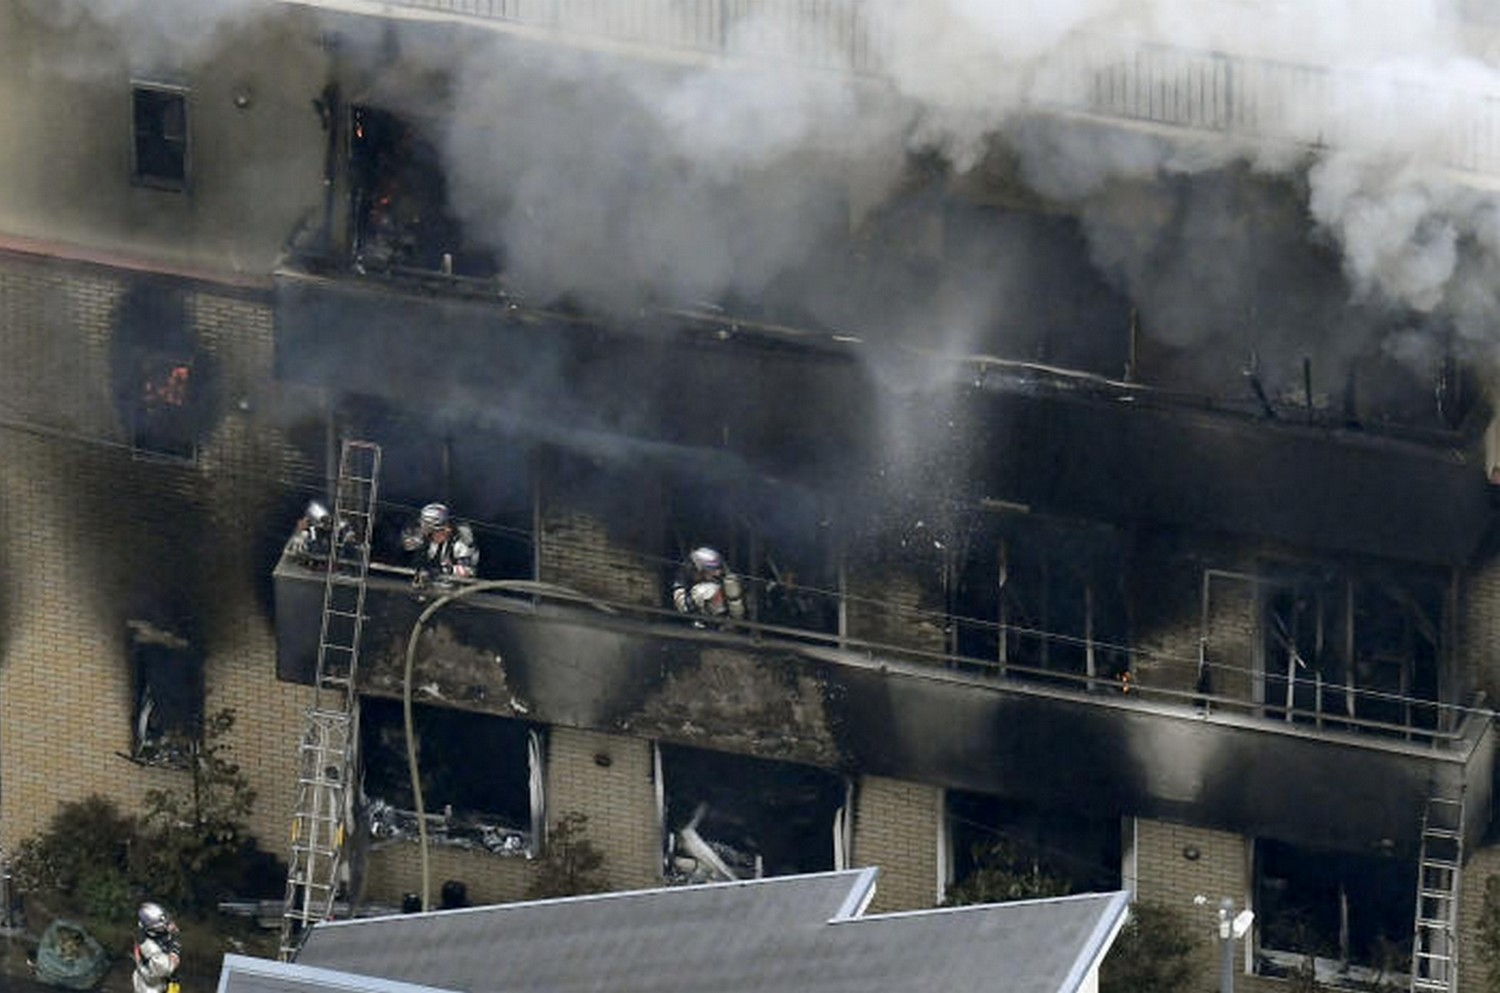 Kyoto Animation fire: Ten dead after suspected arson attack